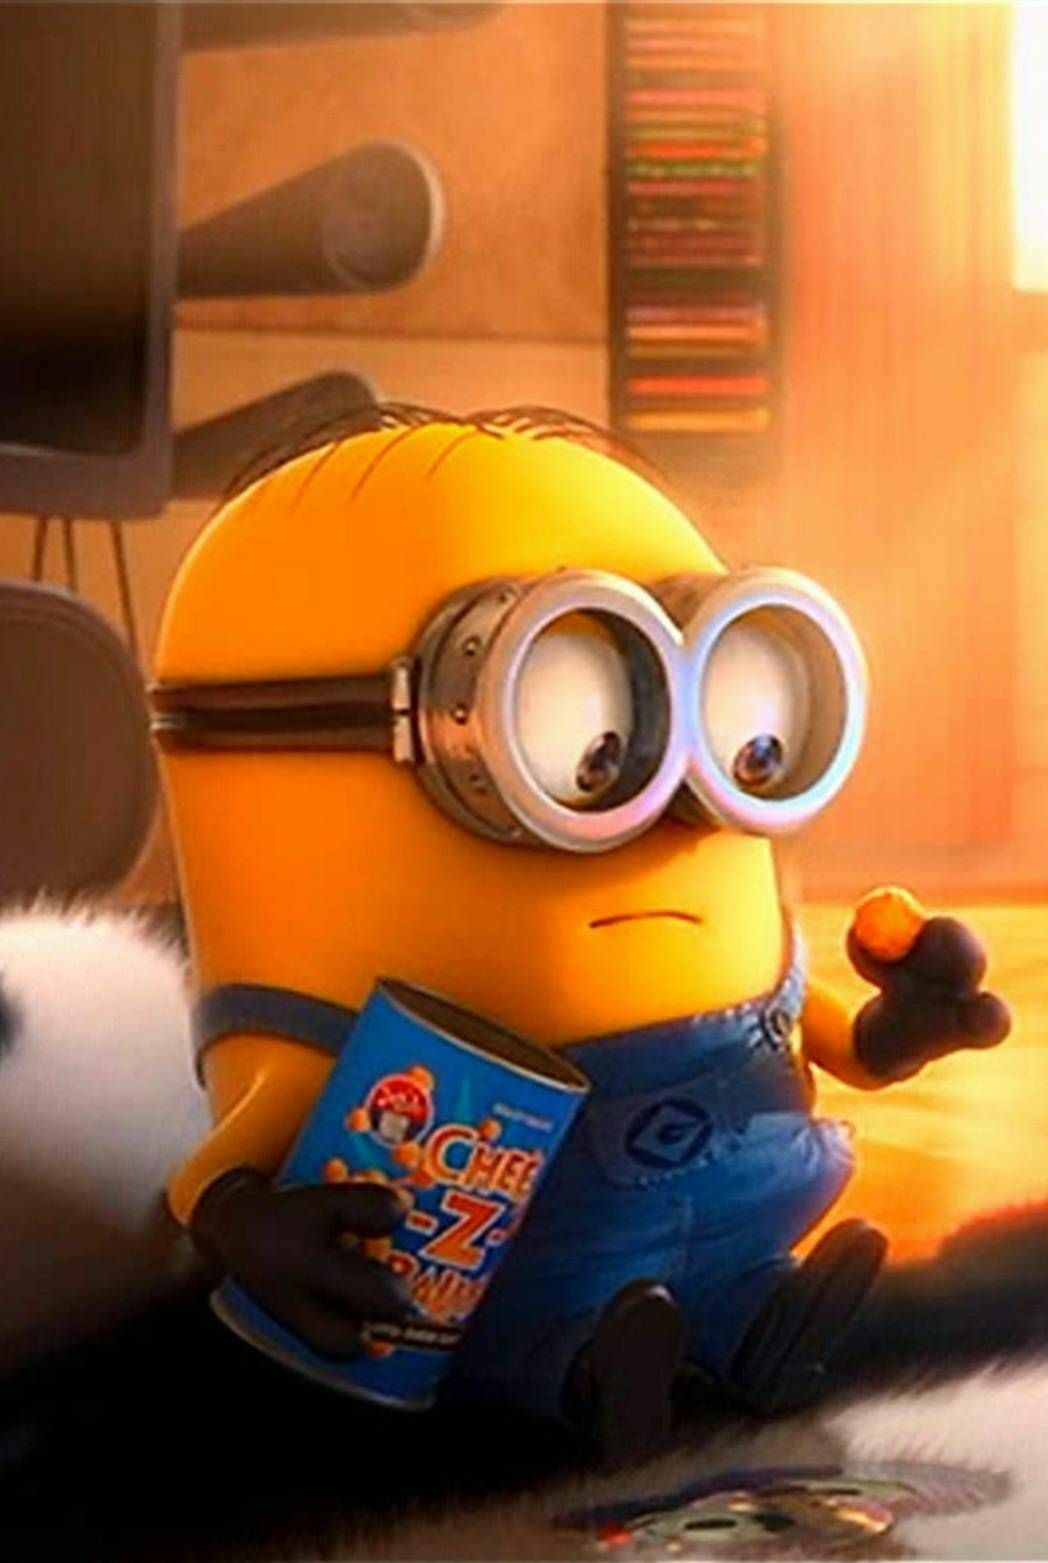 Minions With Images Minions Wallpaper Minions Images Minions